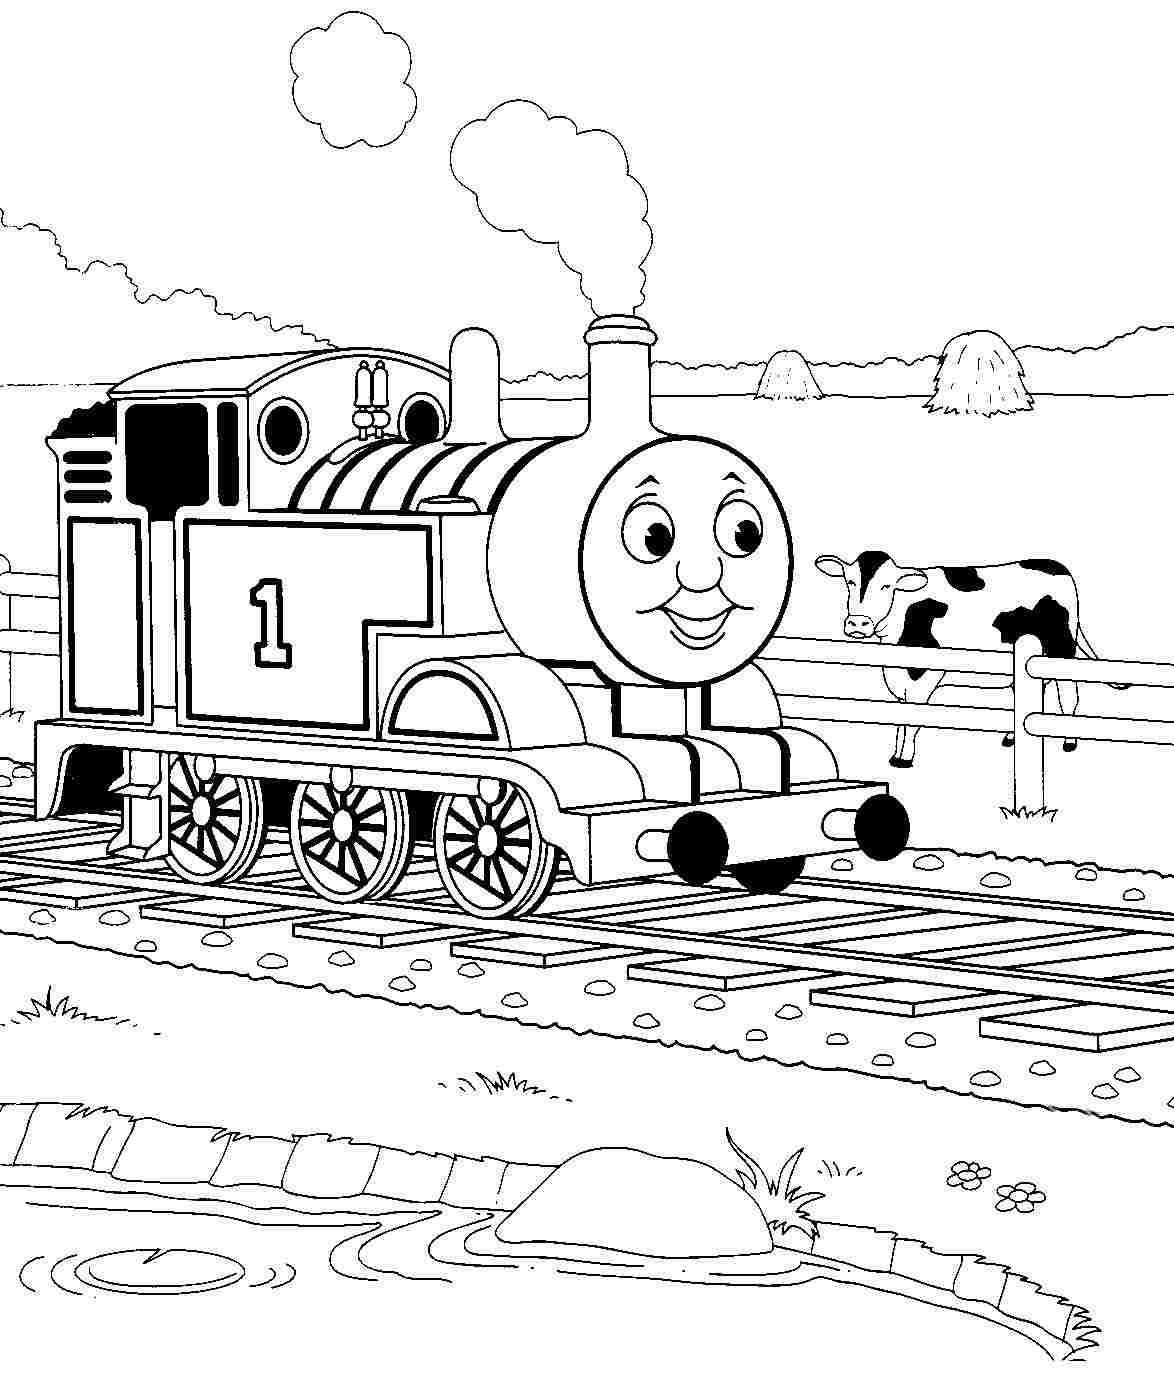 Thomas The Train Coloring Pages Fresh Coloring Cooloring innen Malvorlage Thomas Und Seine Freunde